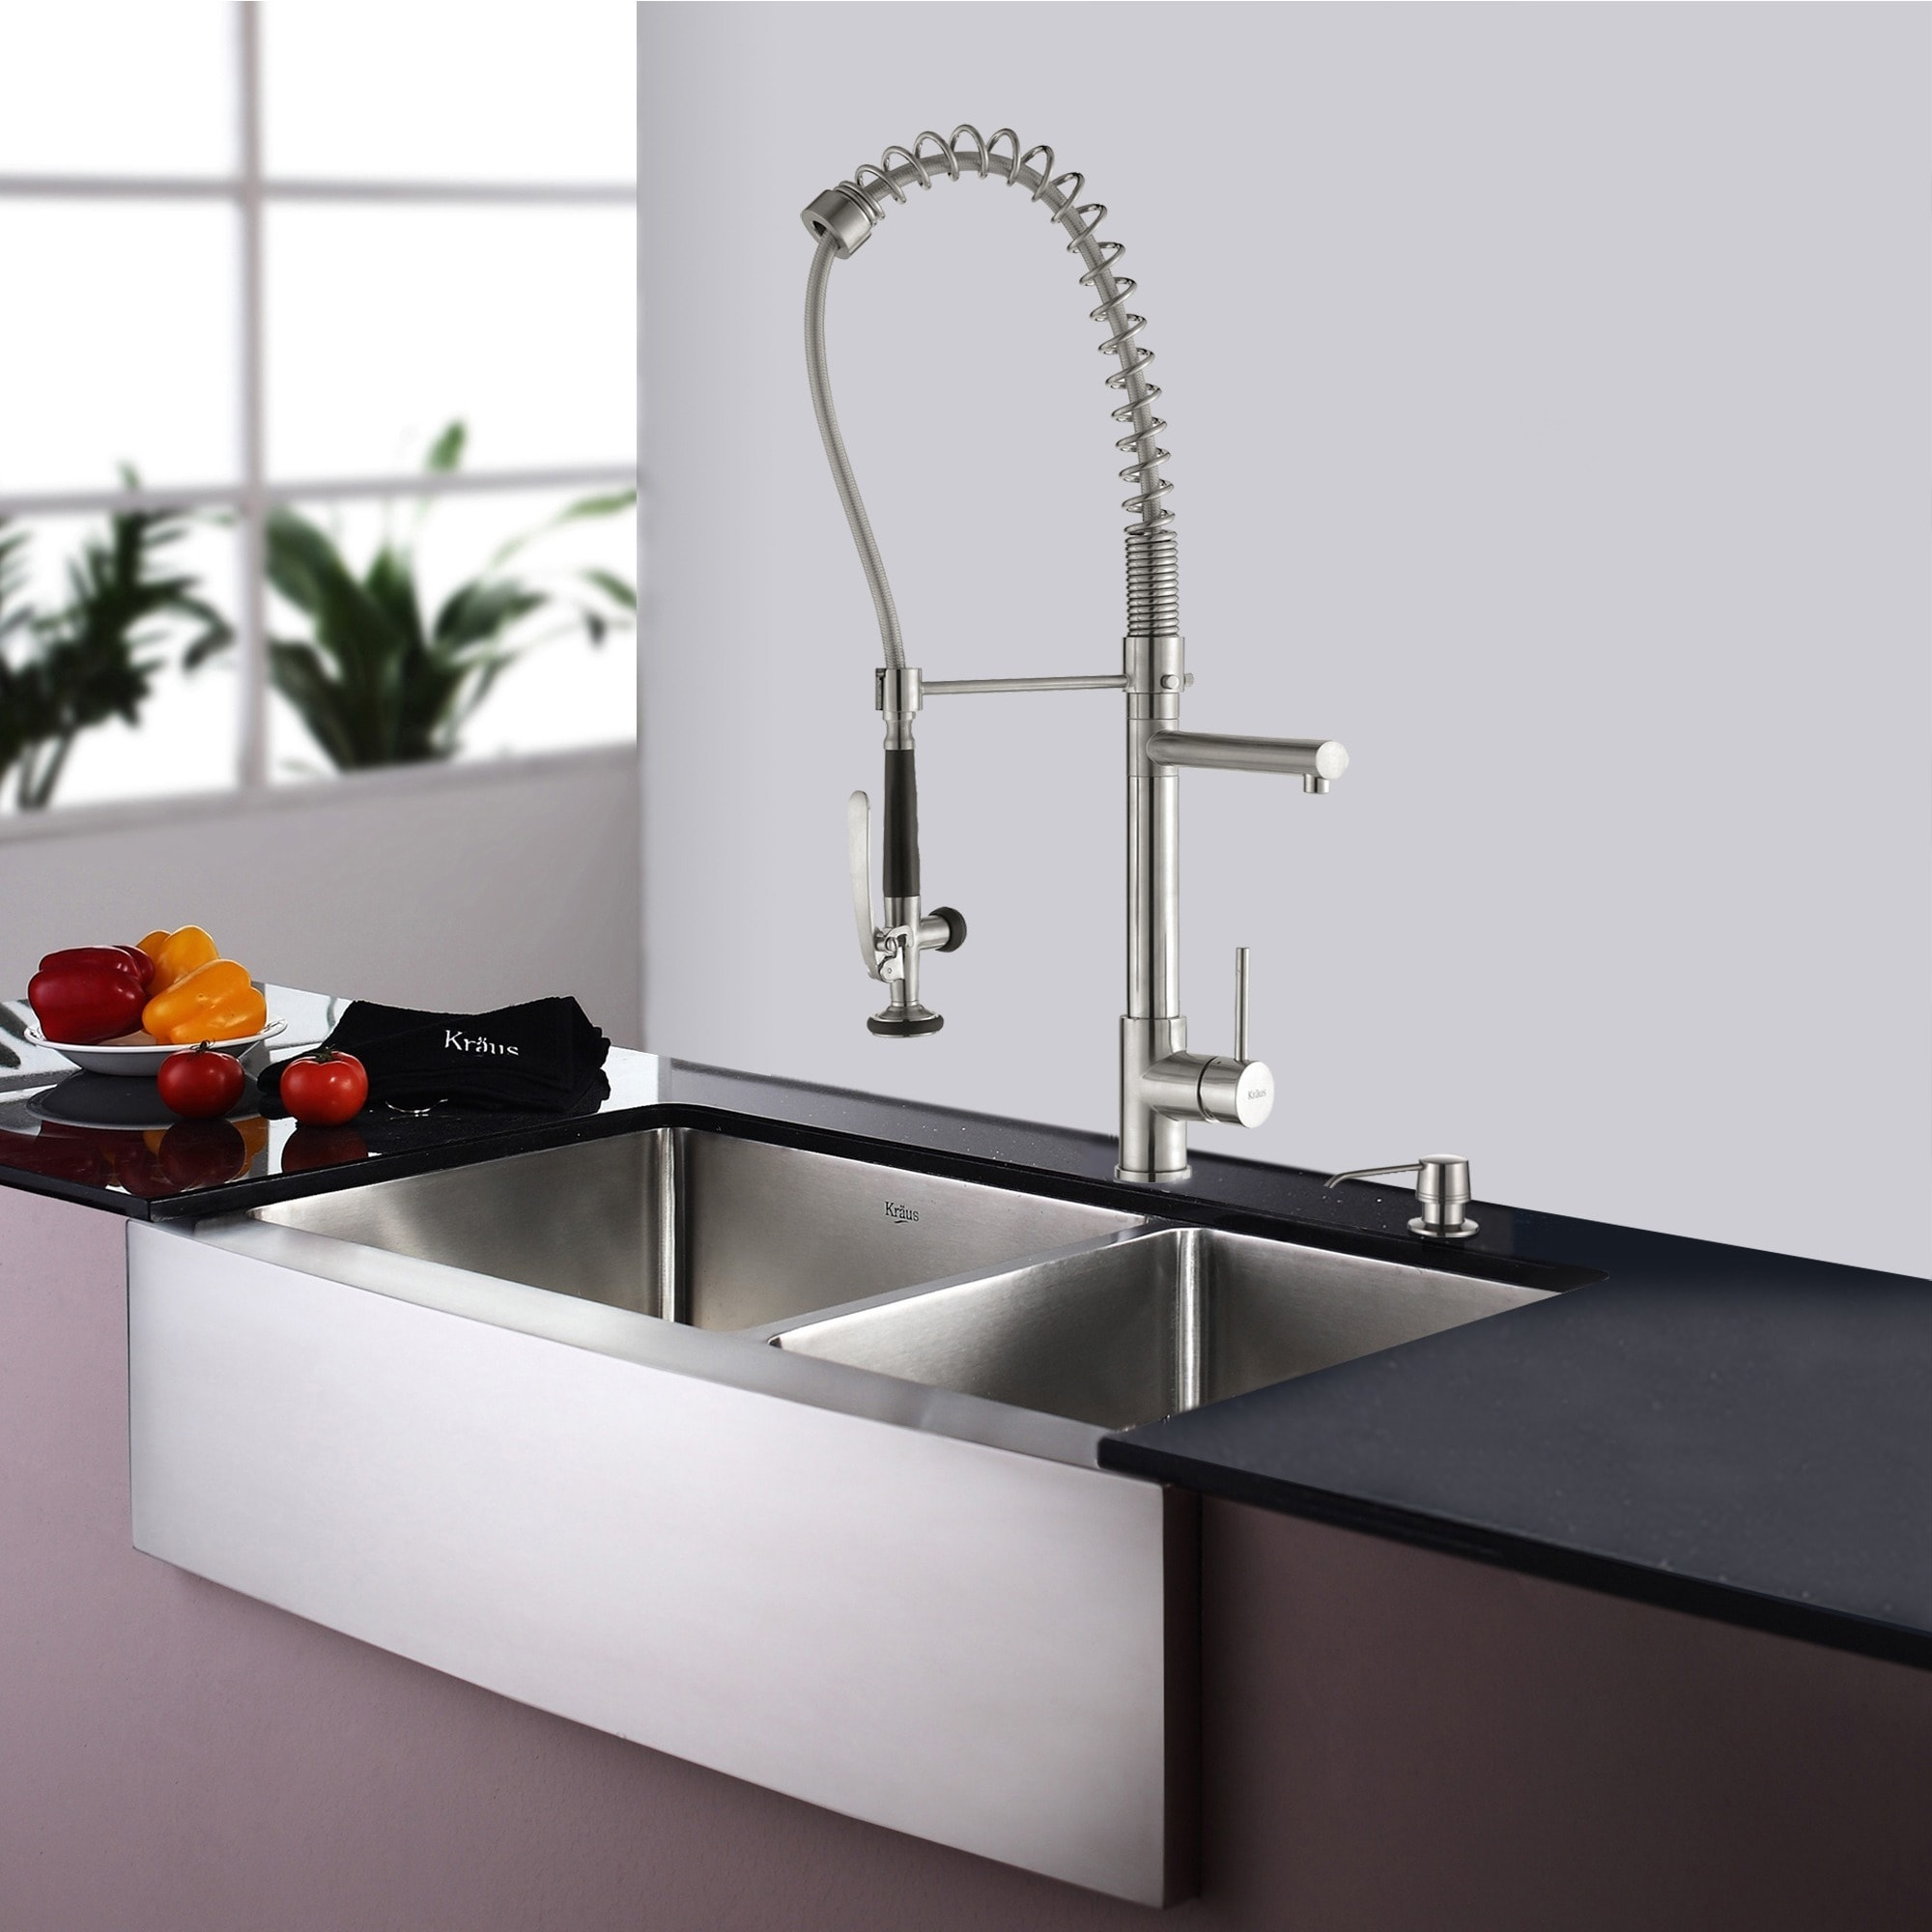 inspirations towels style images table including outstanding kitchen farmhouse faucets sets modern faucet sinks